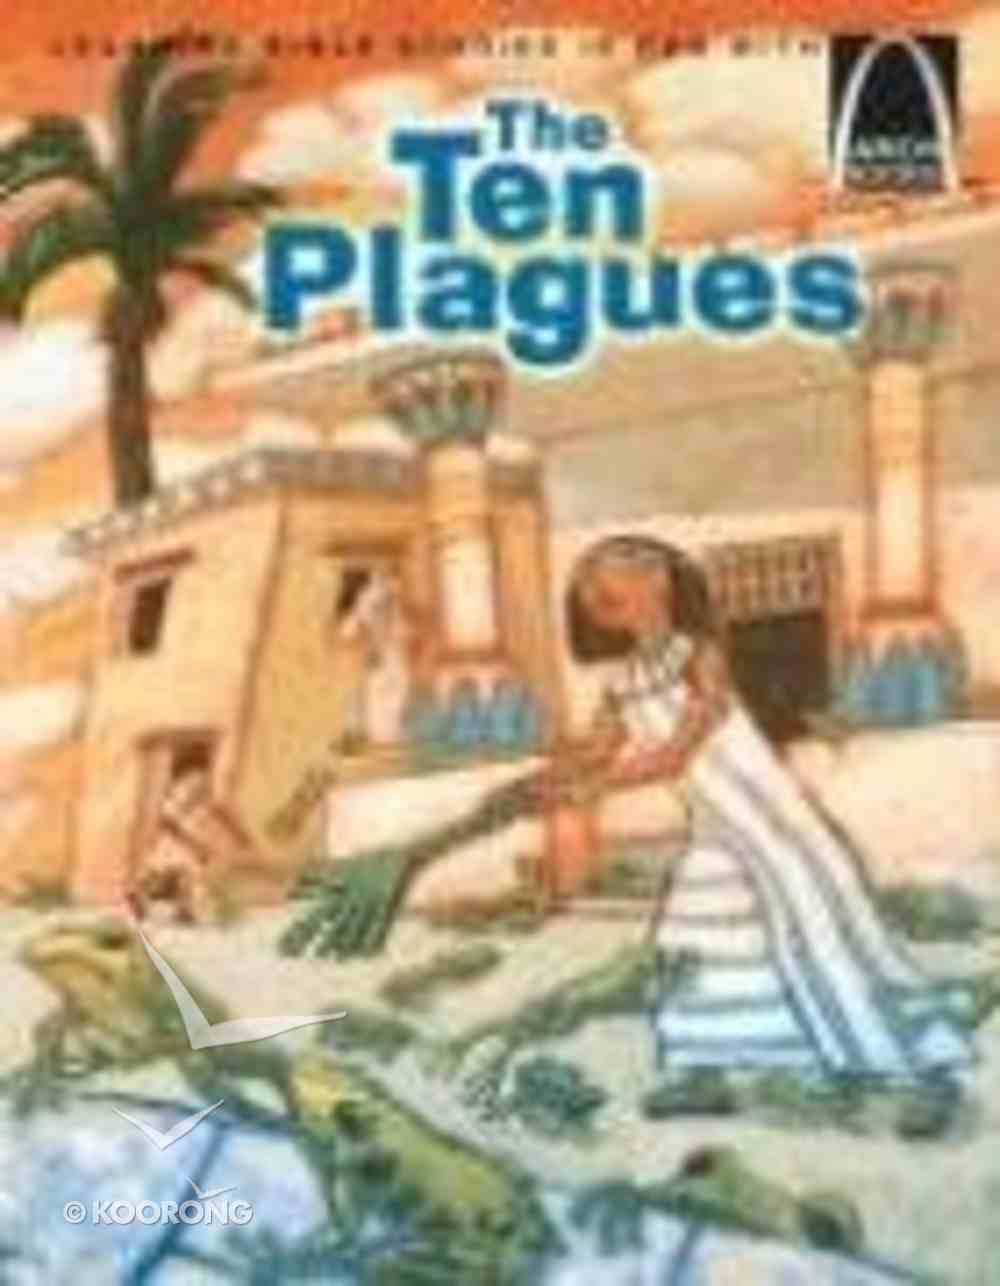 The Ten Plagues (Arch Books Series) Paperback